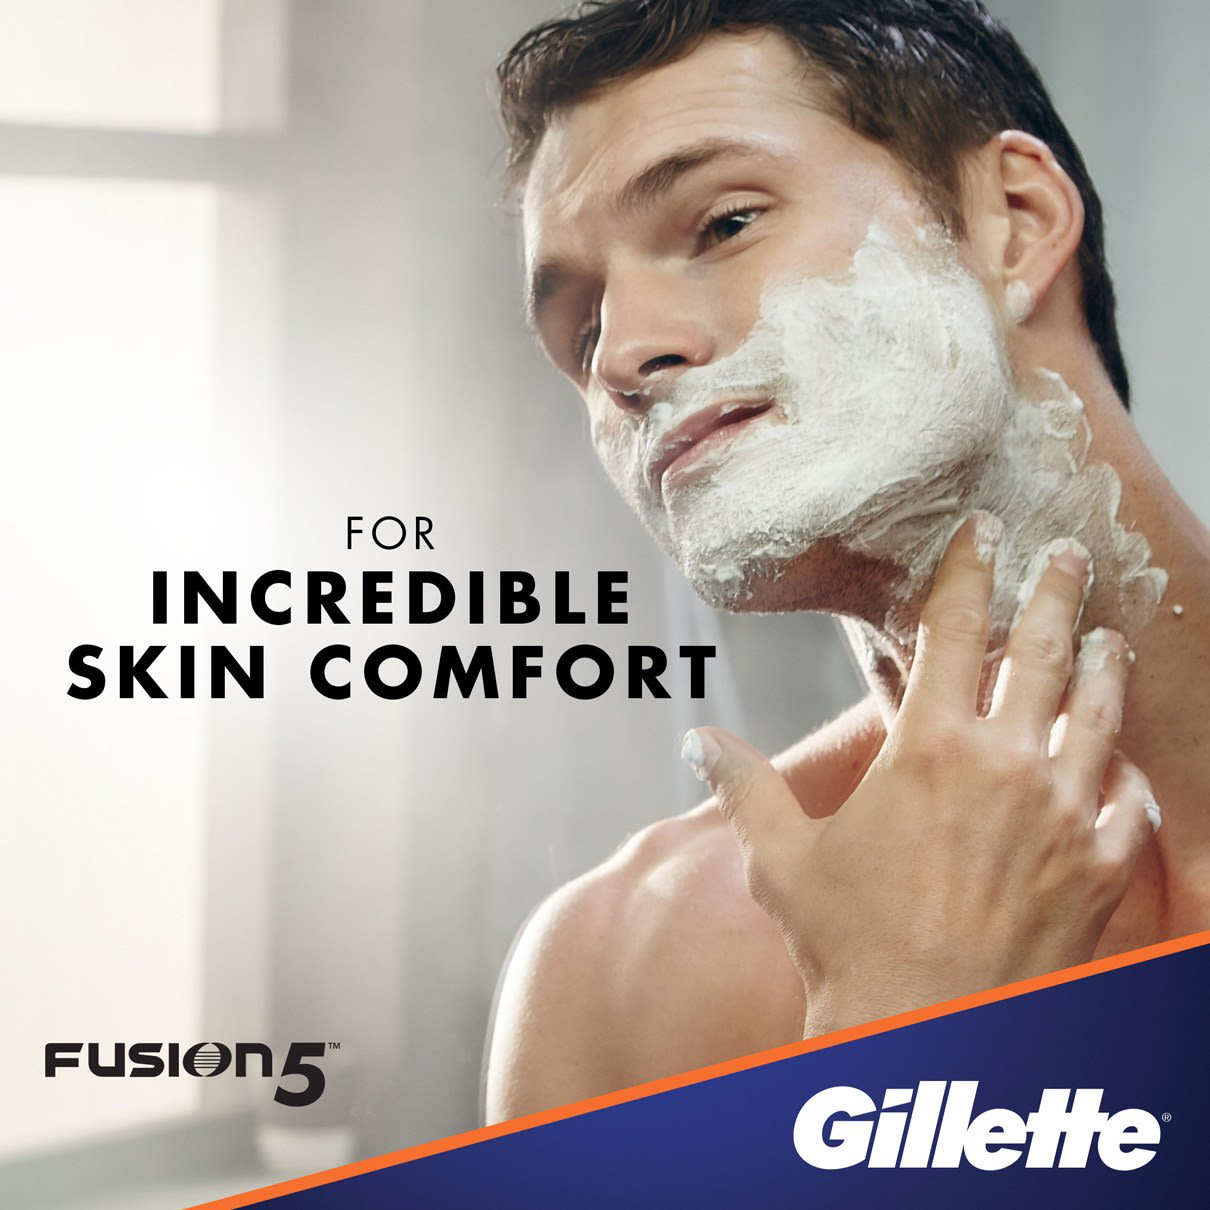 For Incredible Skin Comfort I  Gillette Fusion5 Ultra Sensitive Shave Gel